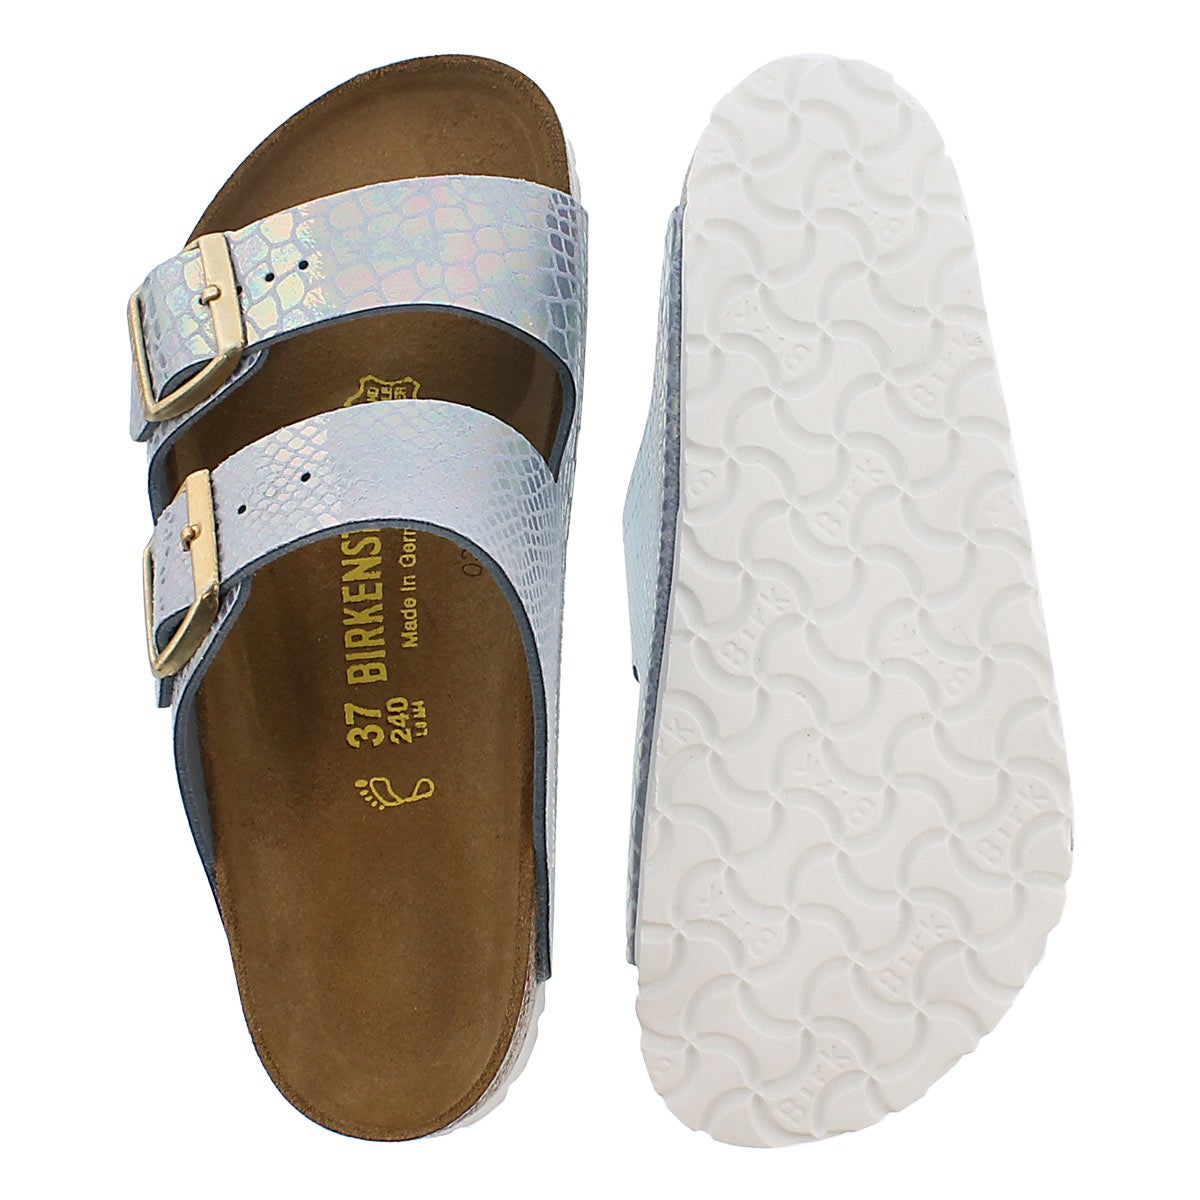 Lds Arizona shiney snake sky sandal